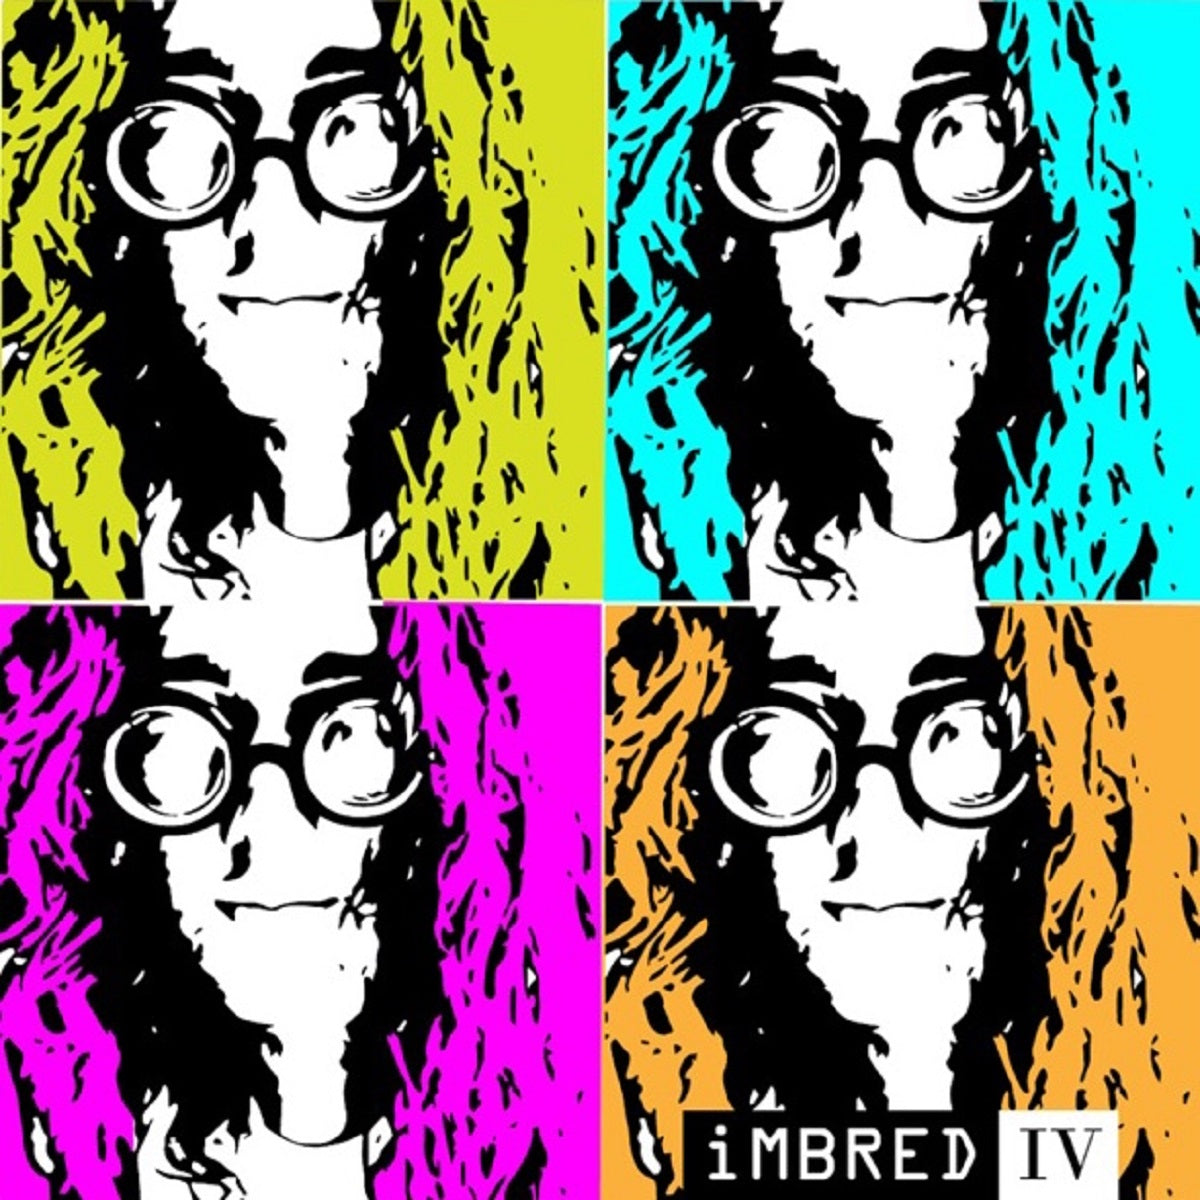 Imbred – 'IV'